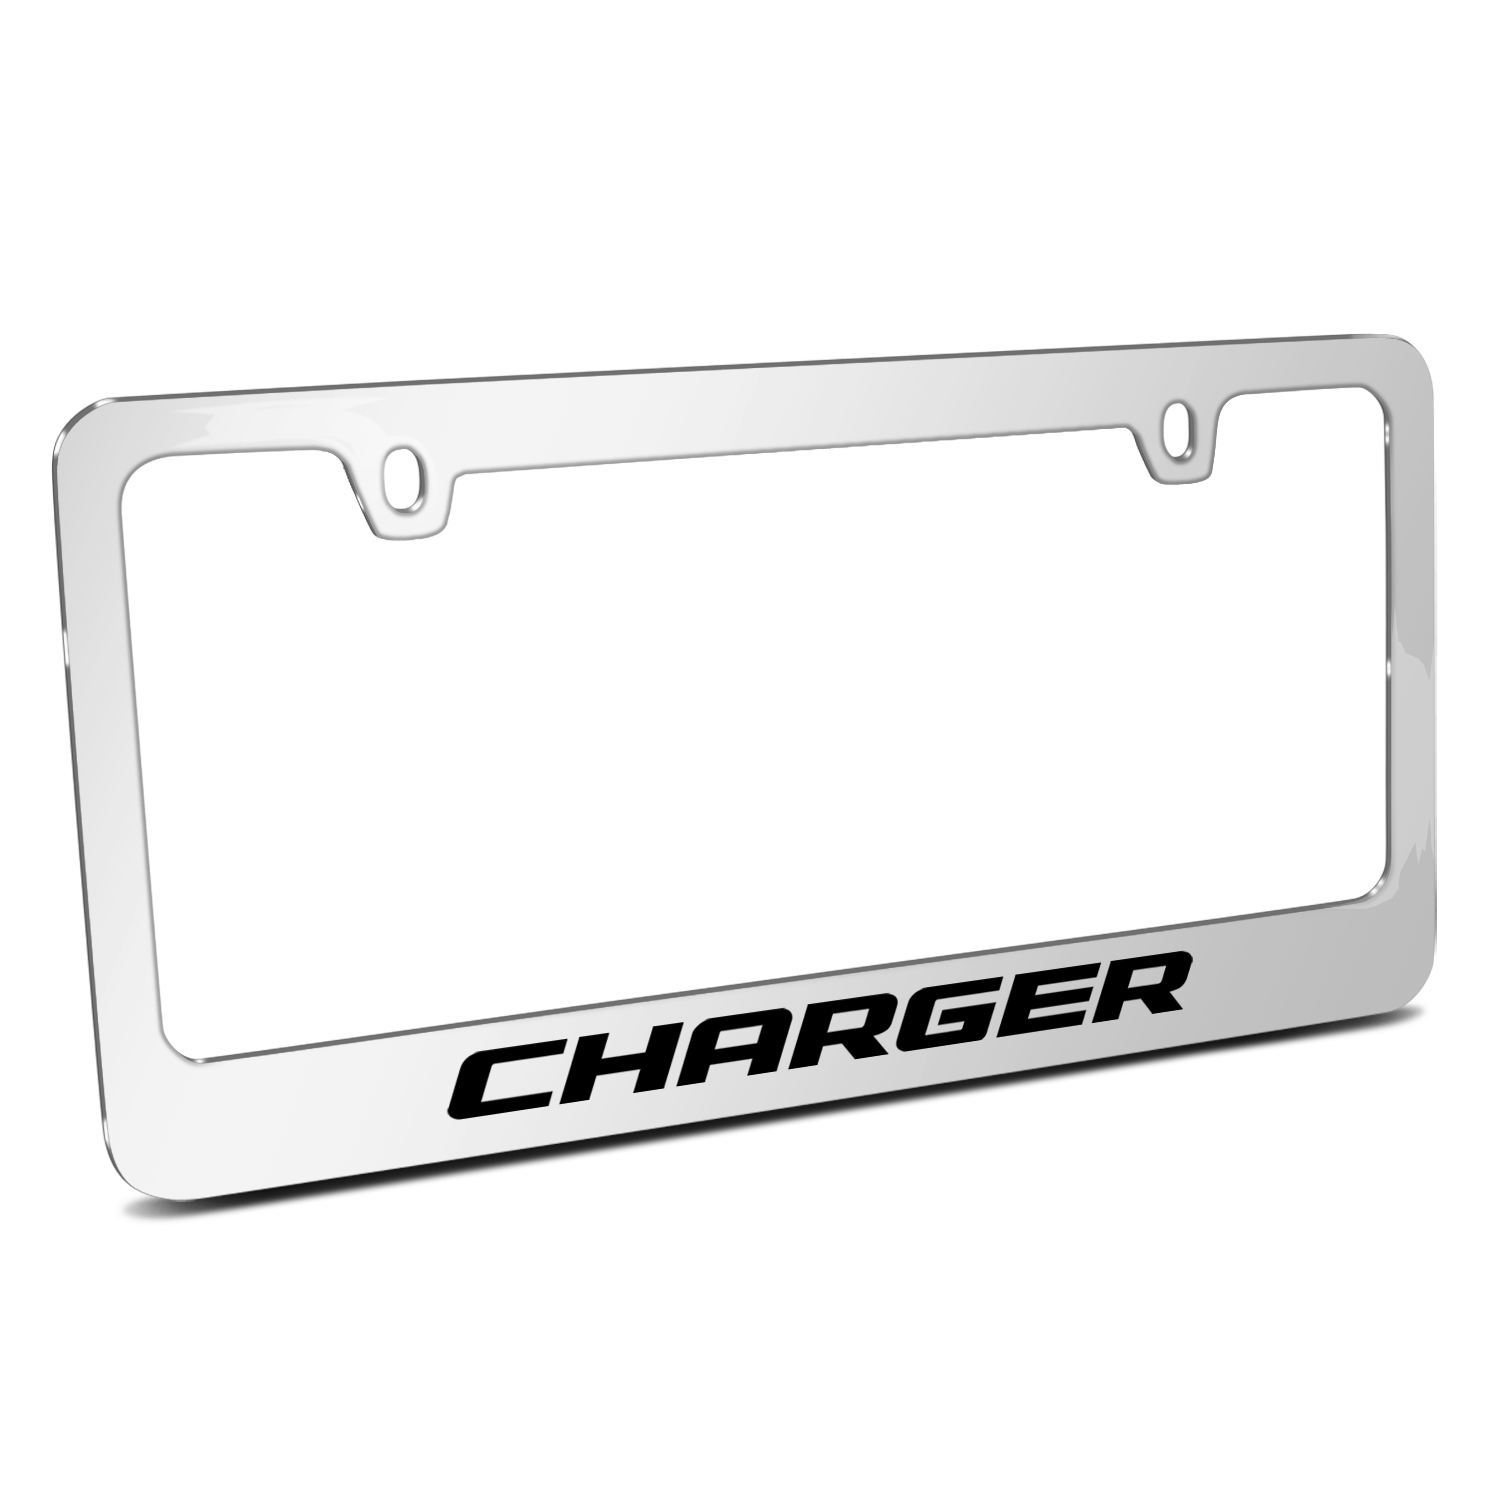 Dodge Charger Mirror Chrome Metal License Plate Frame